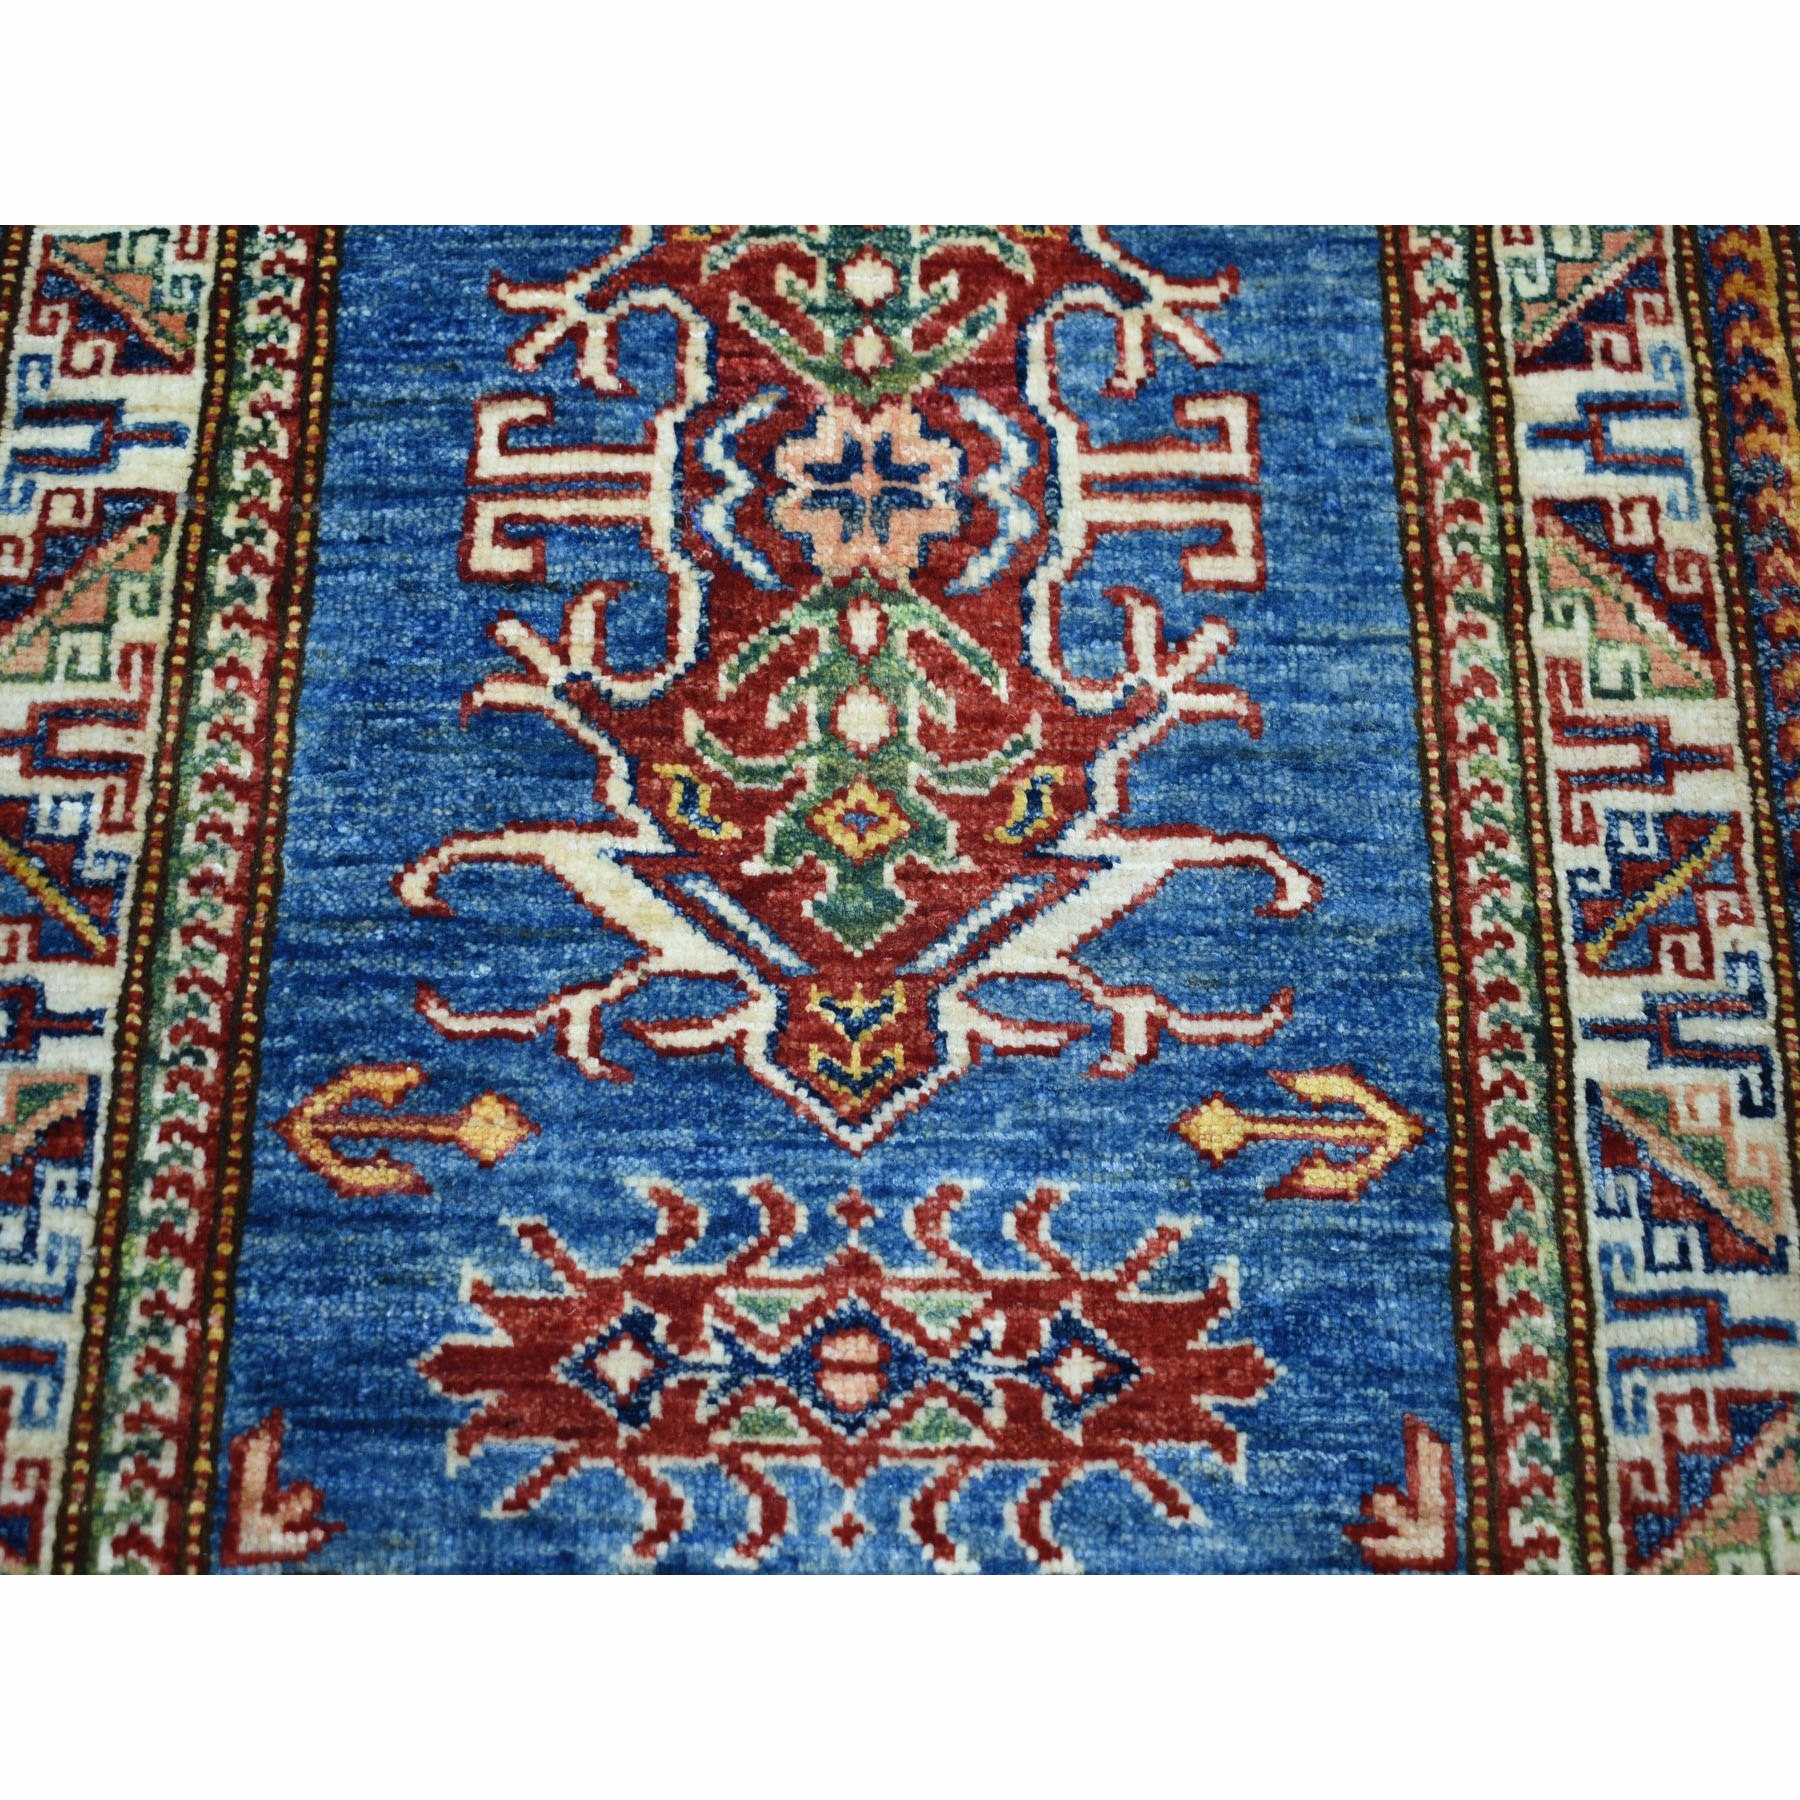 2-1 x3- Super Kazak Pure Wool Blue Geometric Design Hand-Knotted Oriental Rug